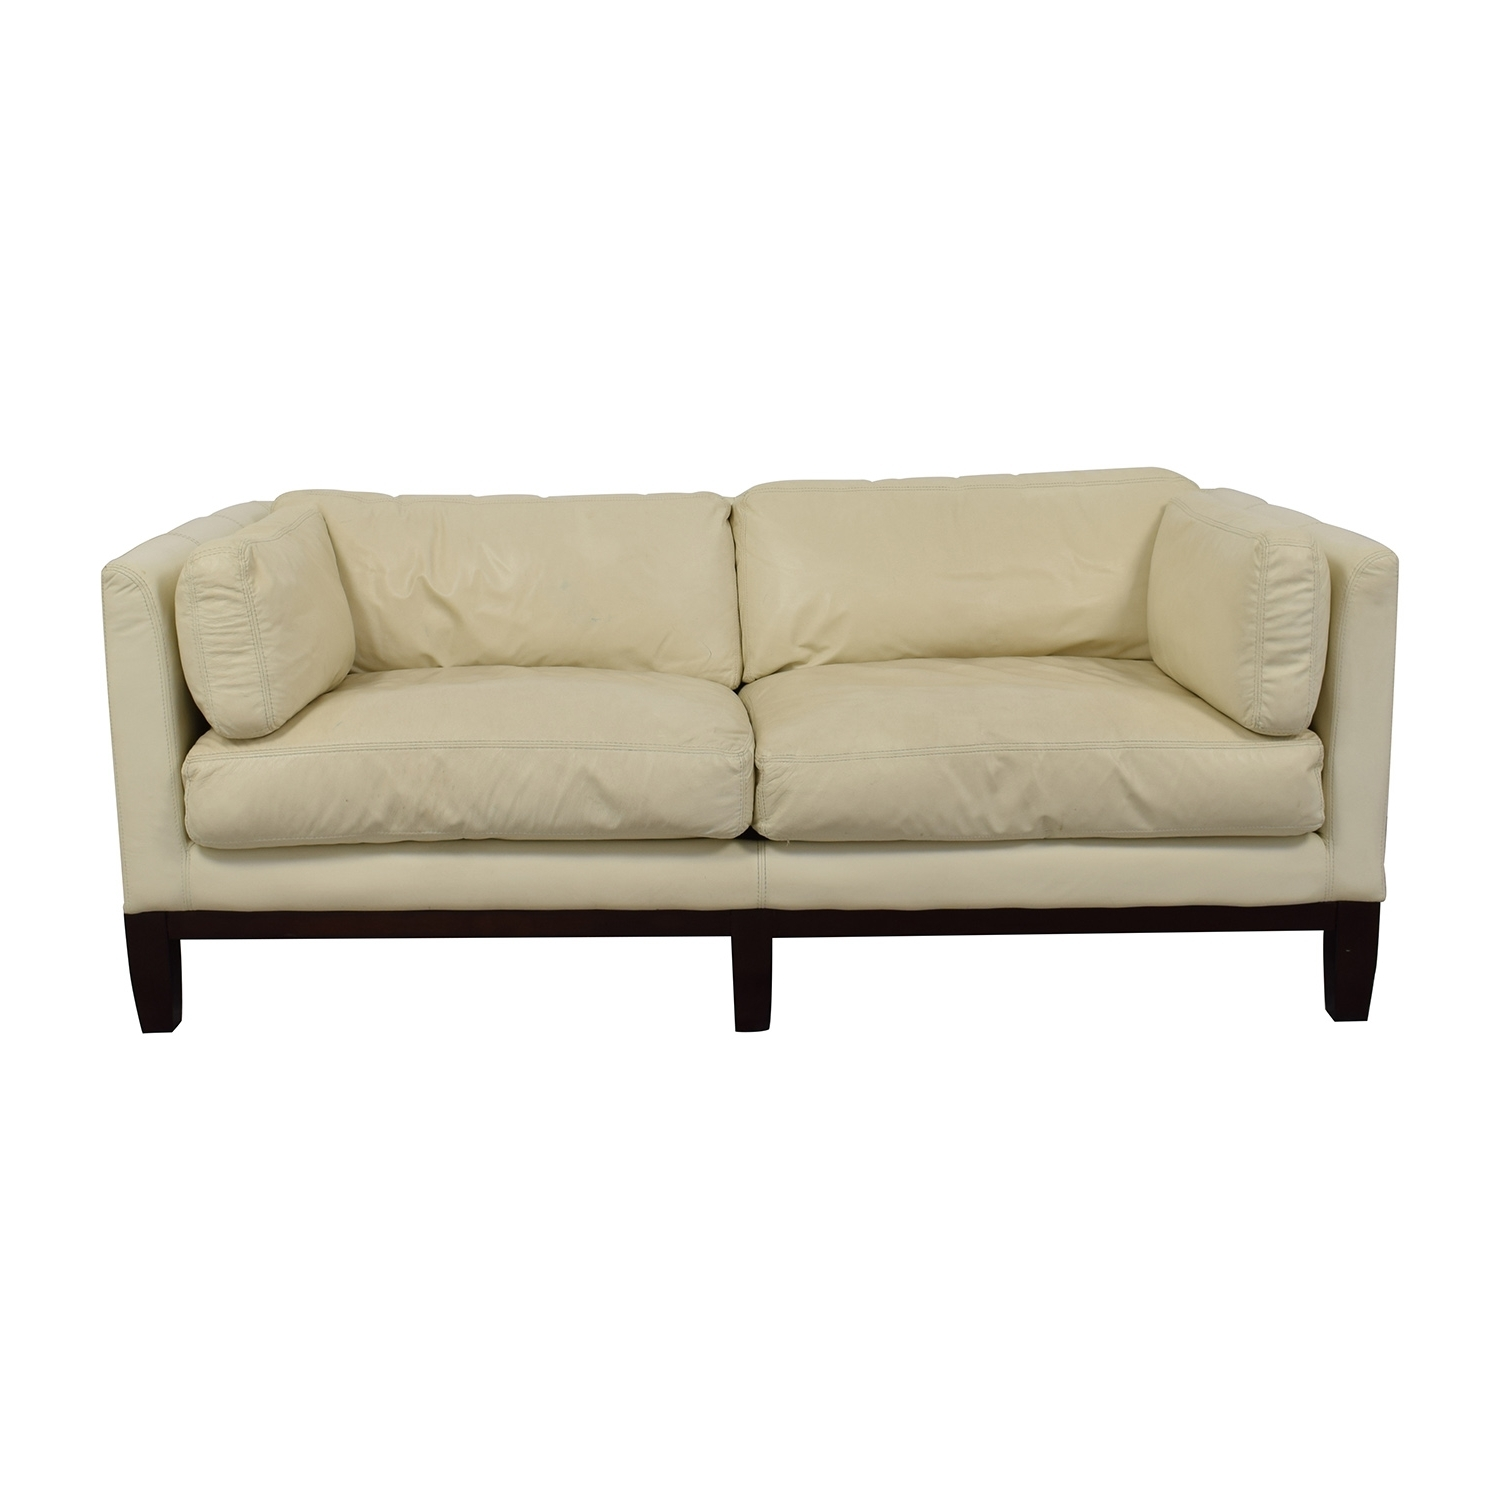 [%72% Off – Decoro Decoro Off White Leather Sofa / Sofas In Widely Used Off White Leather Sofas|Off White Leather Sofas With Most Recent 72% Off – Decoro Decoro Off White Leather Sofa / Sofas|Most Recent Off White Leather Sofas Throughout 72% Off – Decoro Decoro Off White Leather Sofa / Sofas|Recent 72% Off – Decoro Decoro Off White Leather Sofa / Sofas Within Off White Leather Sofas%] (View 2 of 15)